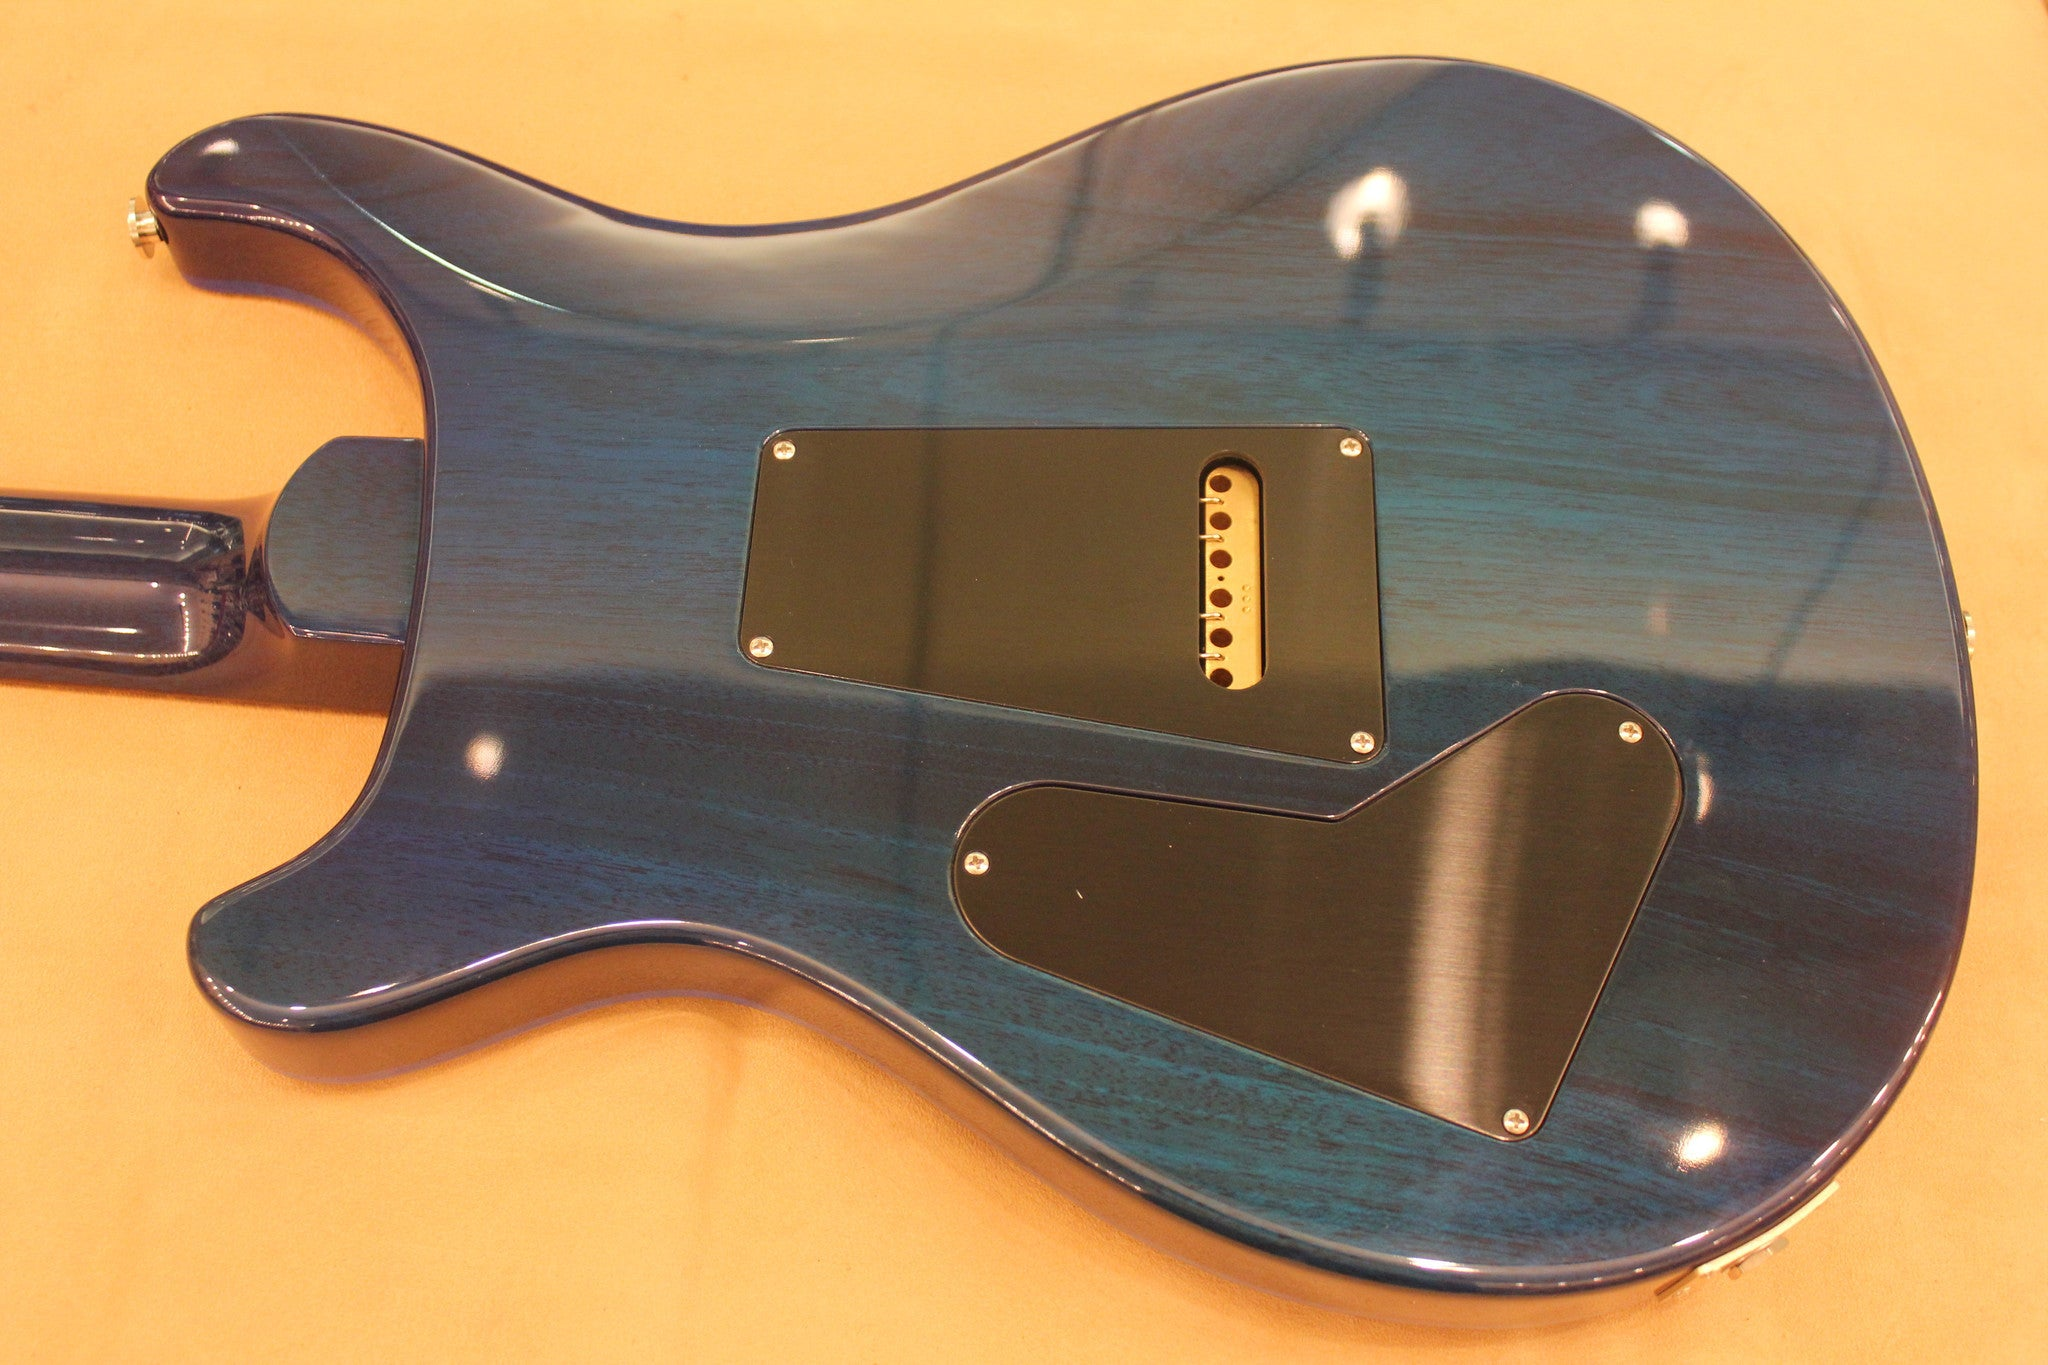 PRS CUSTOM 24 THIN CUSTOM COLOR FADED BLUE BURST SN214974 PRS - HIENDGUITAR.COM